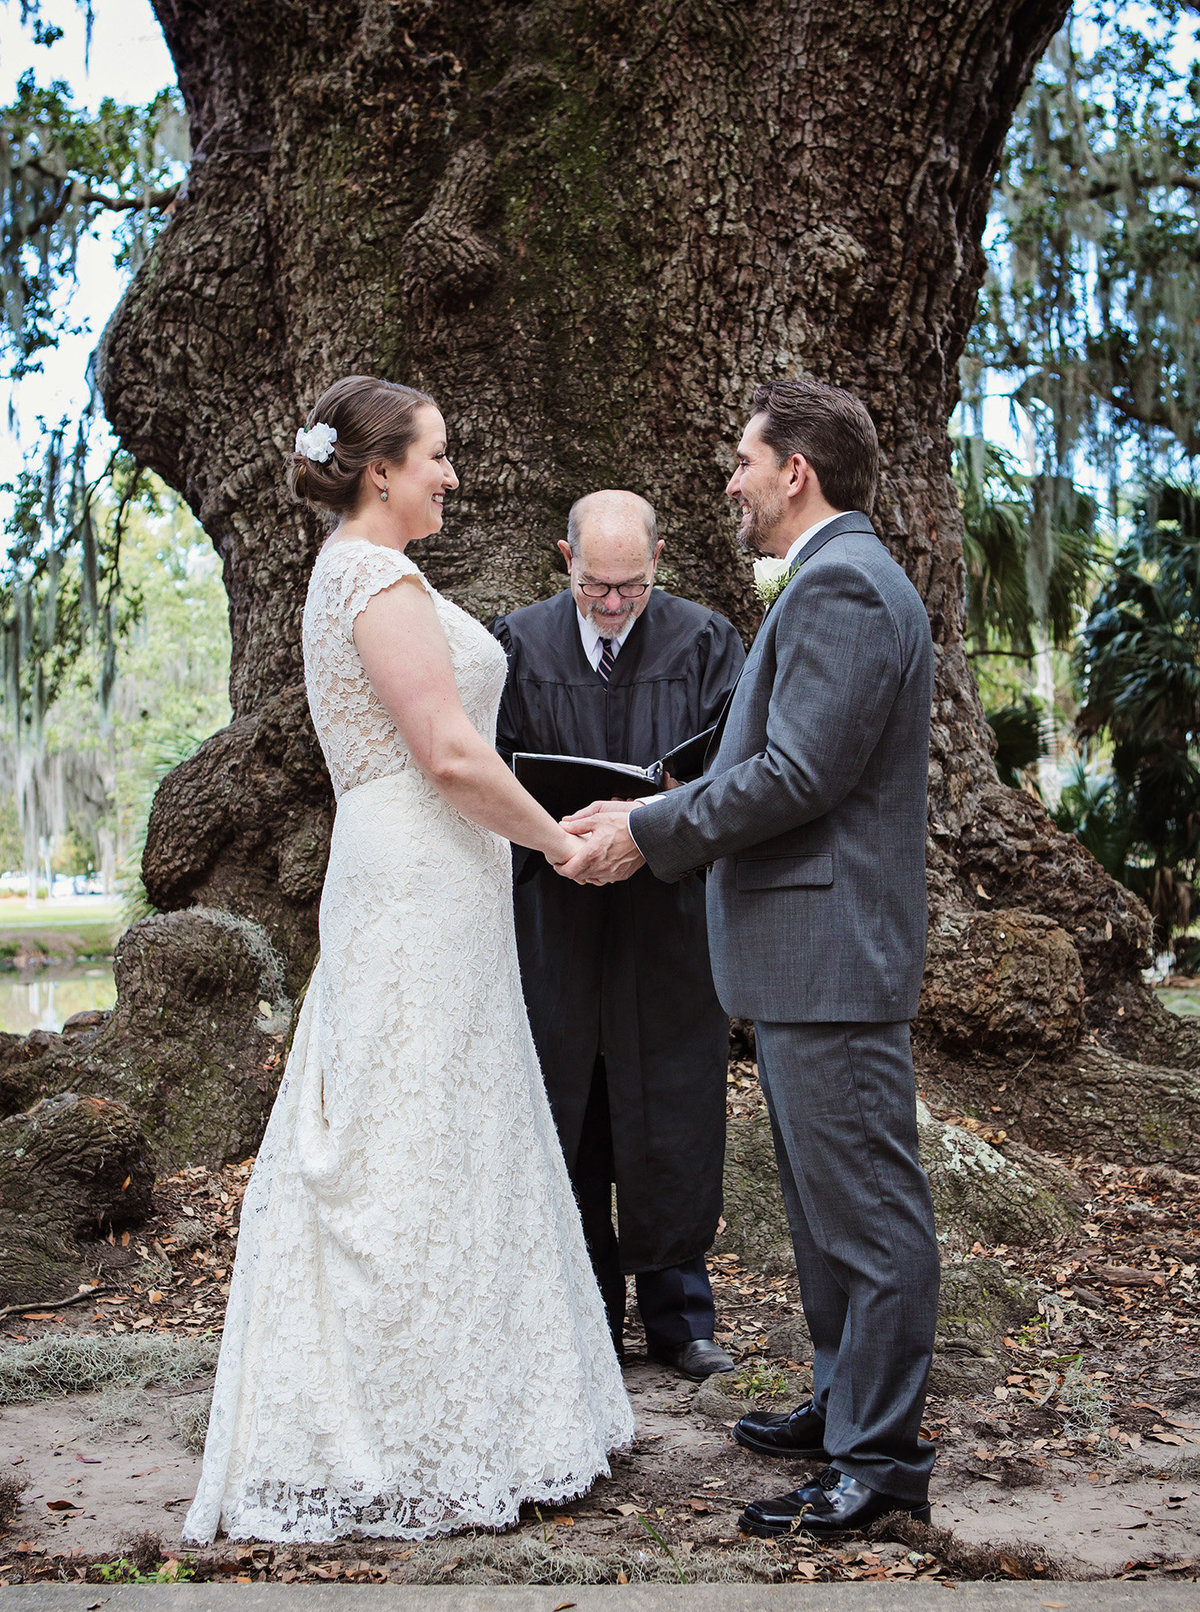 wedding-under-the-trees-in-city-park